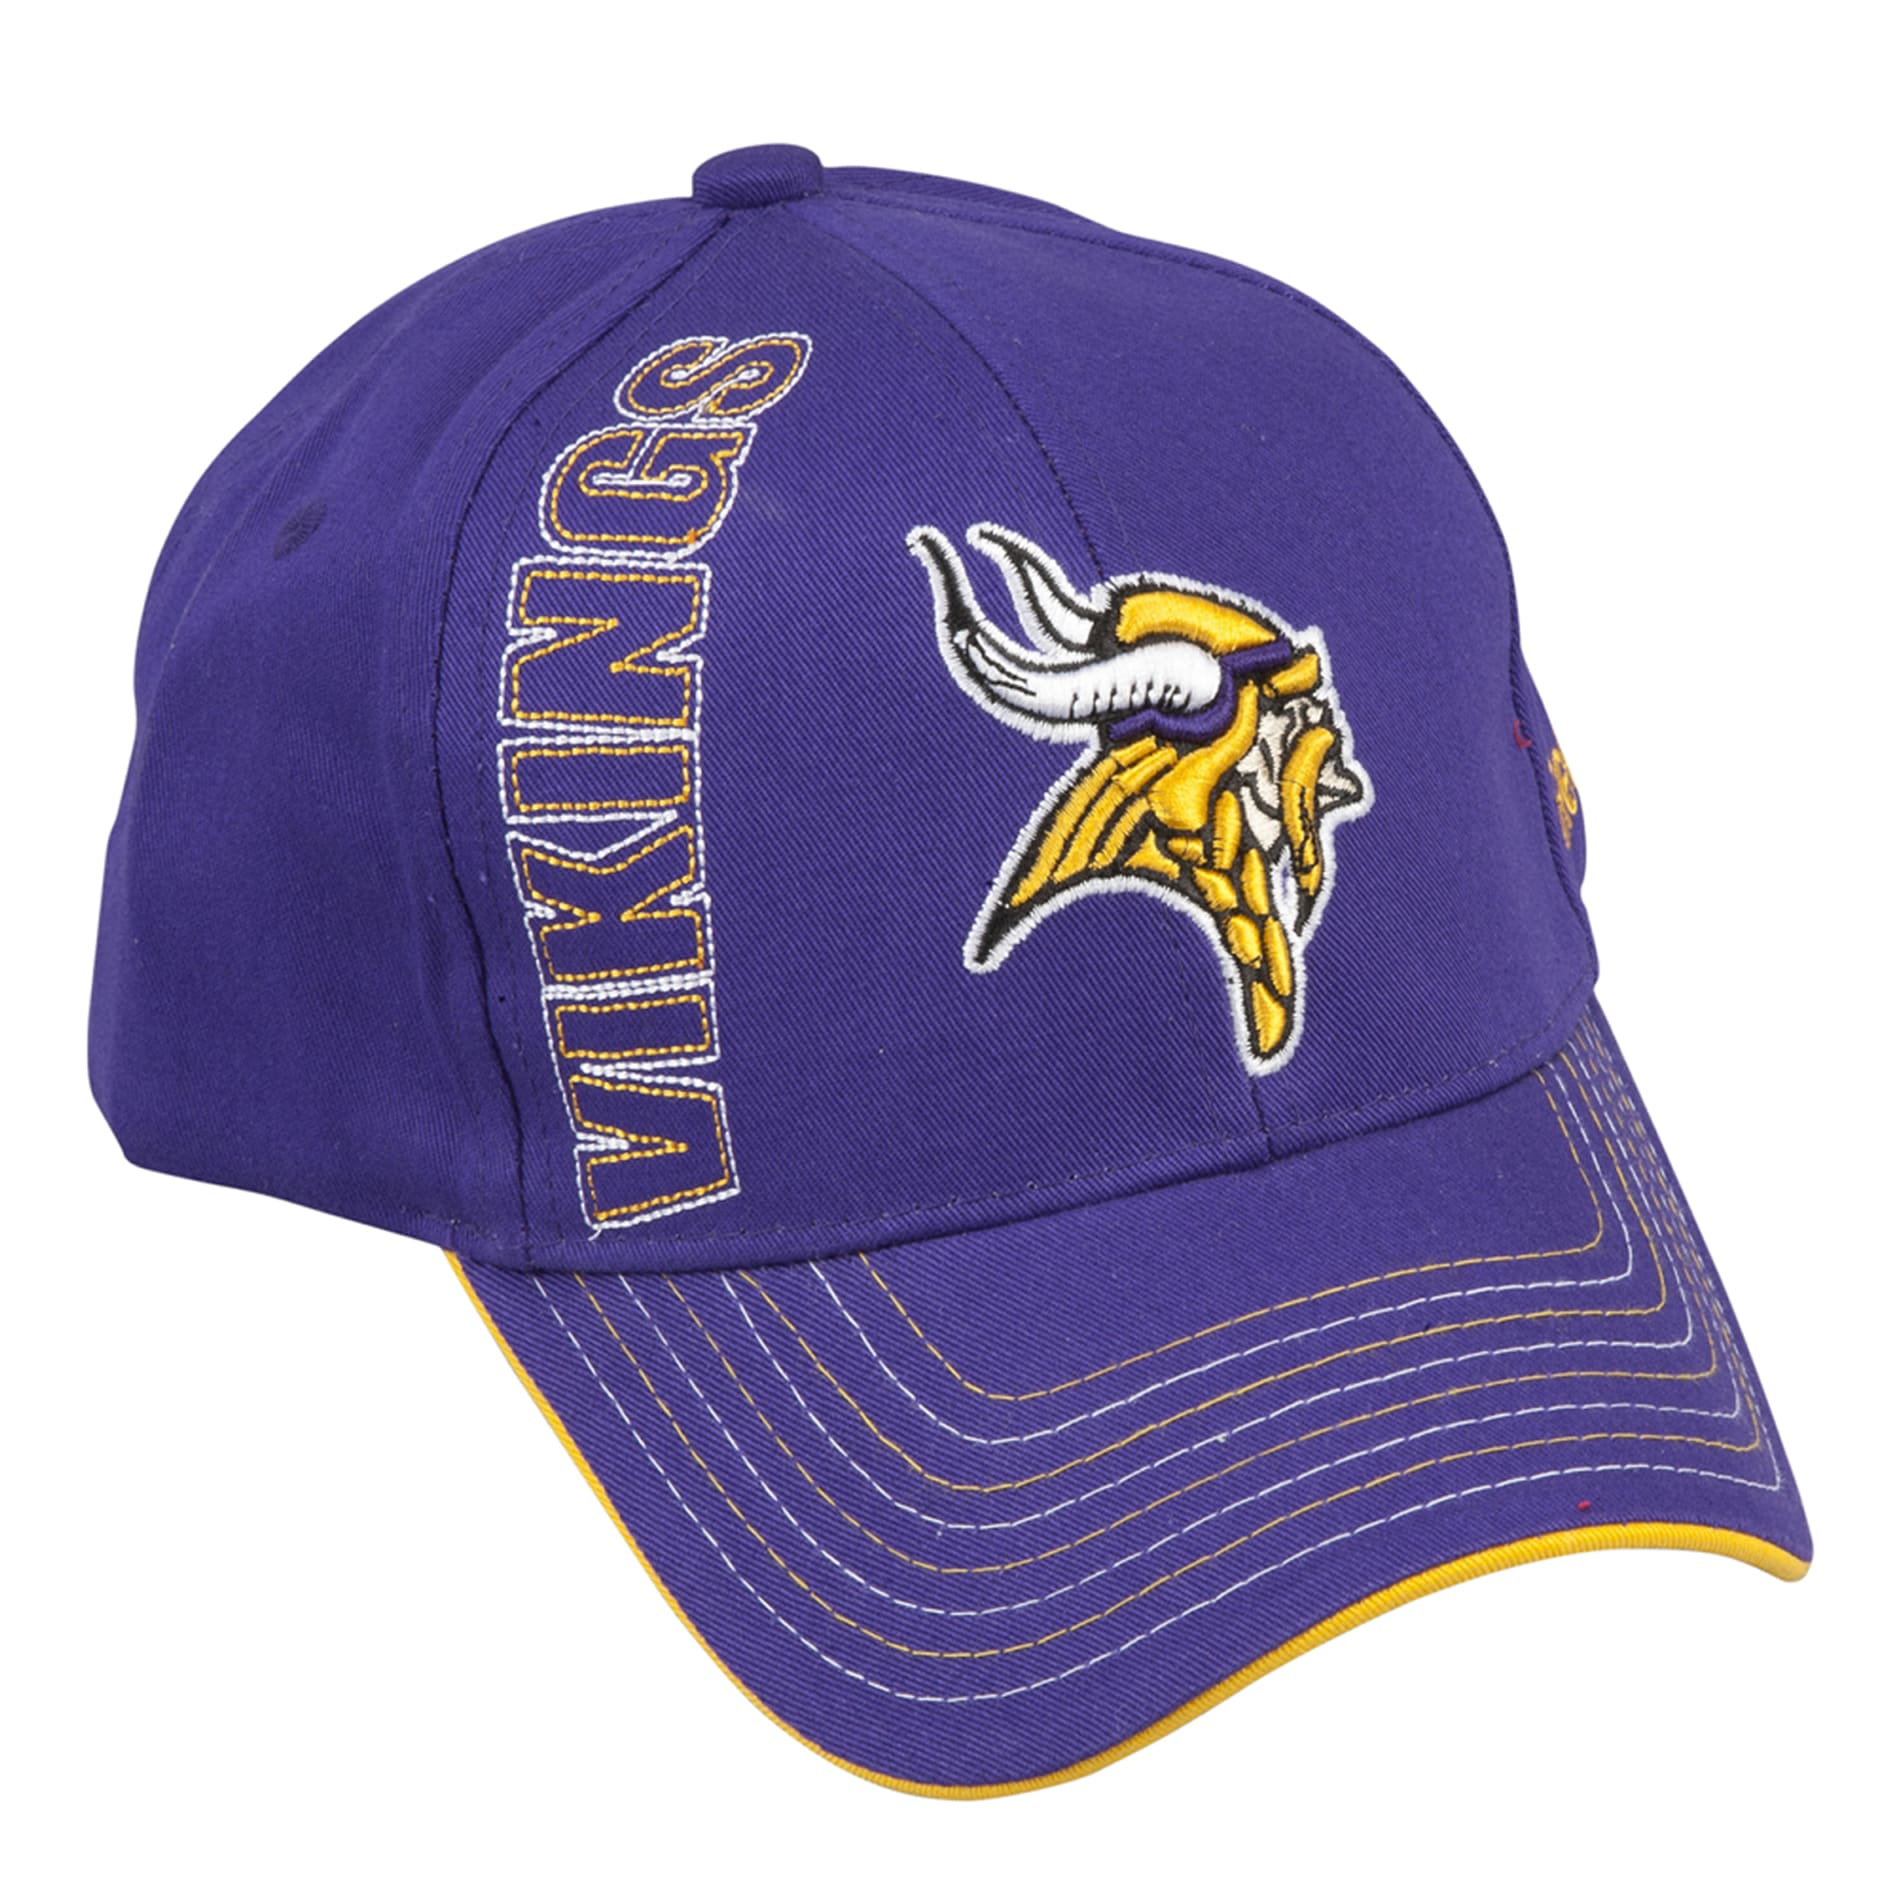 Shop Reebok Minnesota Vikings Yardage Hat - Free Shipping On Orders Over   45 - Overstock.com - 6393223 7e2afe5dd